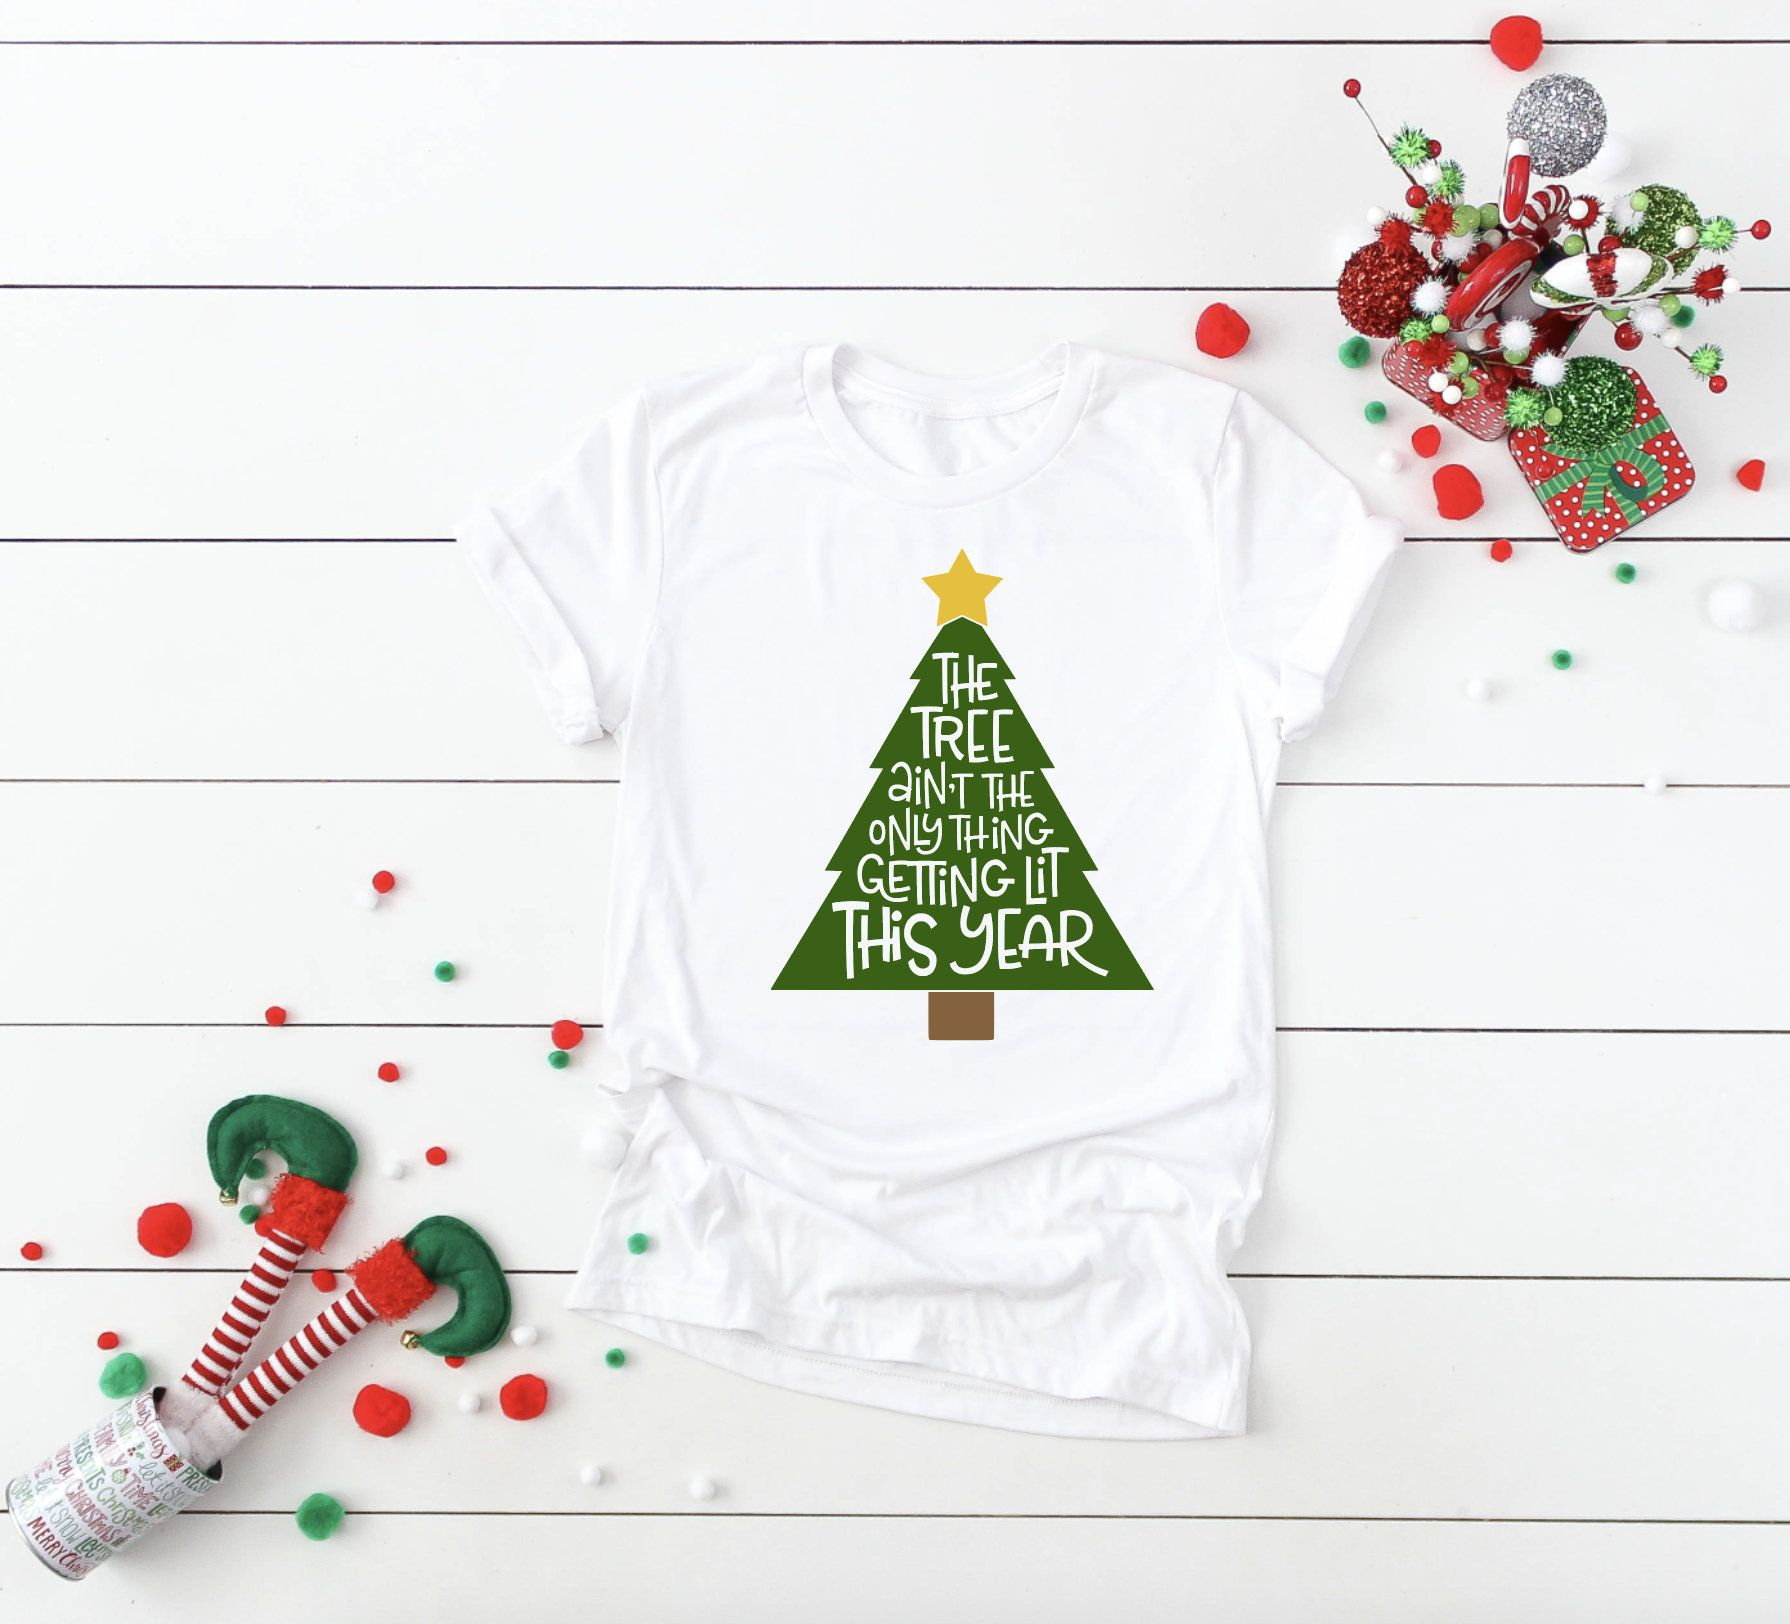 The Tree Ain T The Only Thing Getting Lit This Year Shirt Funny Xmas Christmas Party Gift Office Party Shirt Christmas Shirt Christmas Shirts Christmas Party Gift Gifts For Office